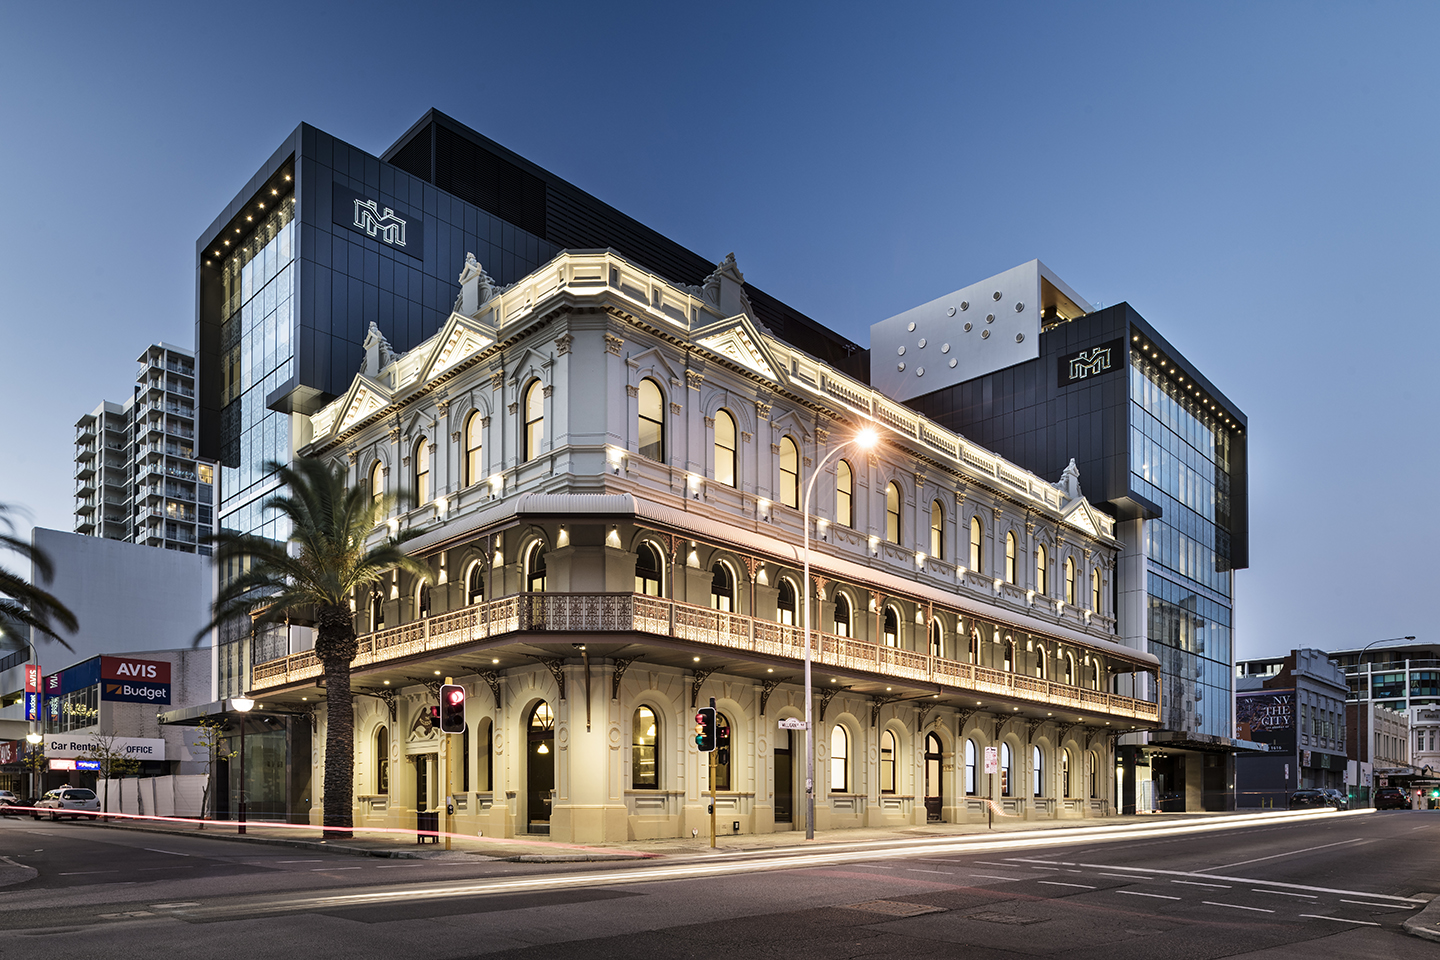 melbourne hotel - Hera Engineering